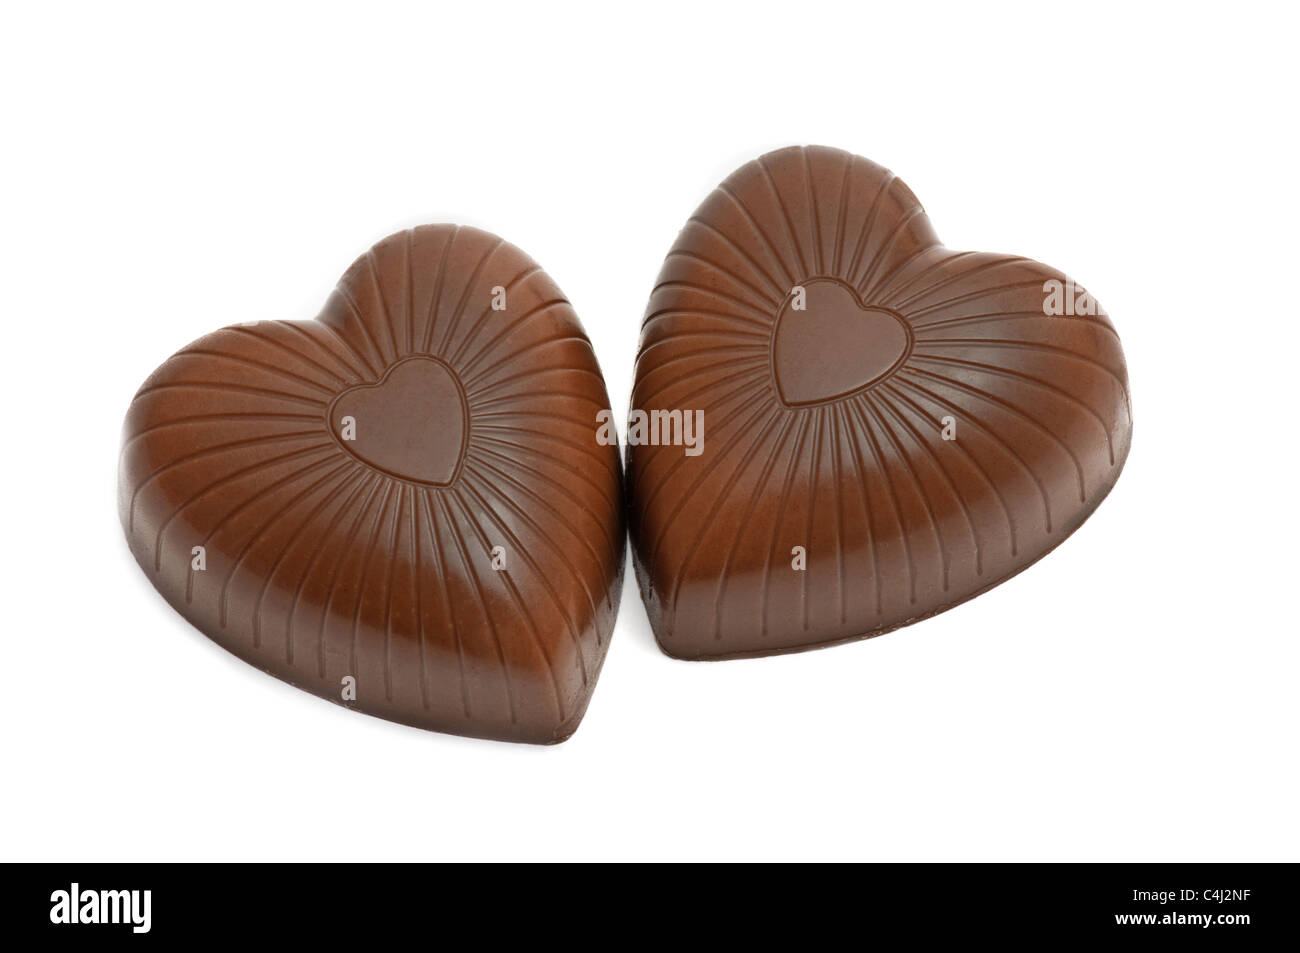 Pair oftop view of chocolate heart shaped candies isolated on white - Stock Image